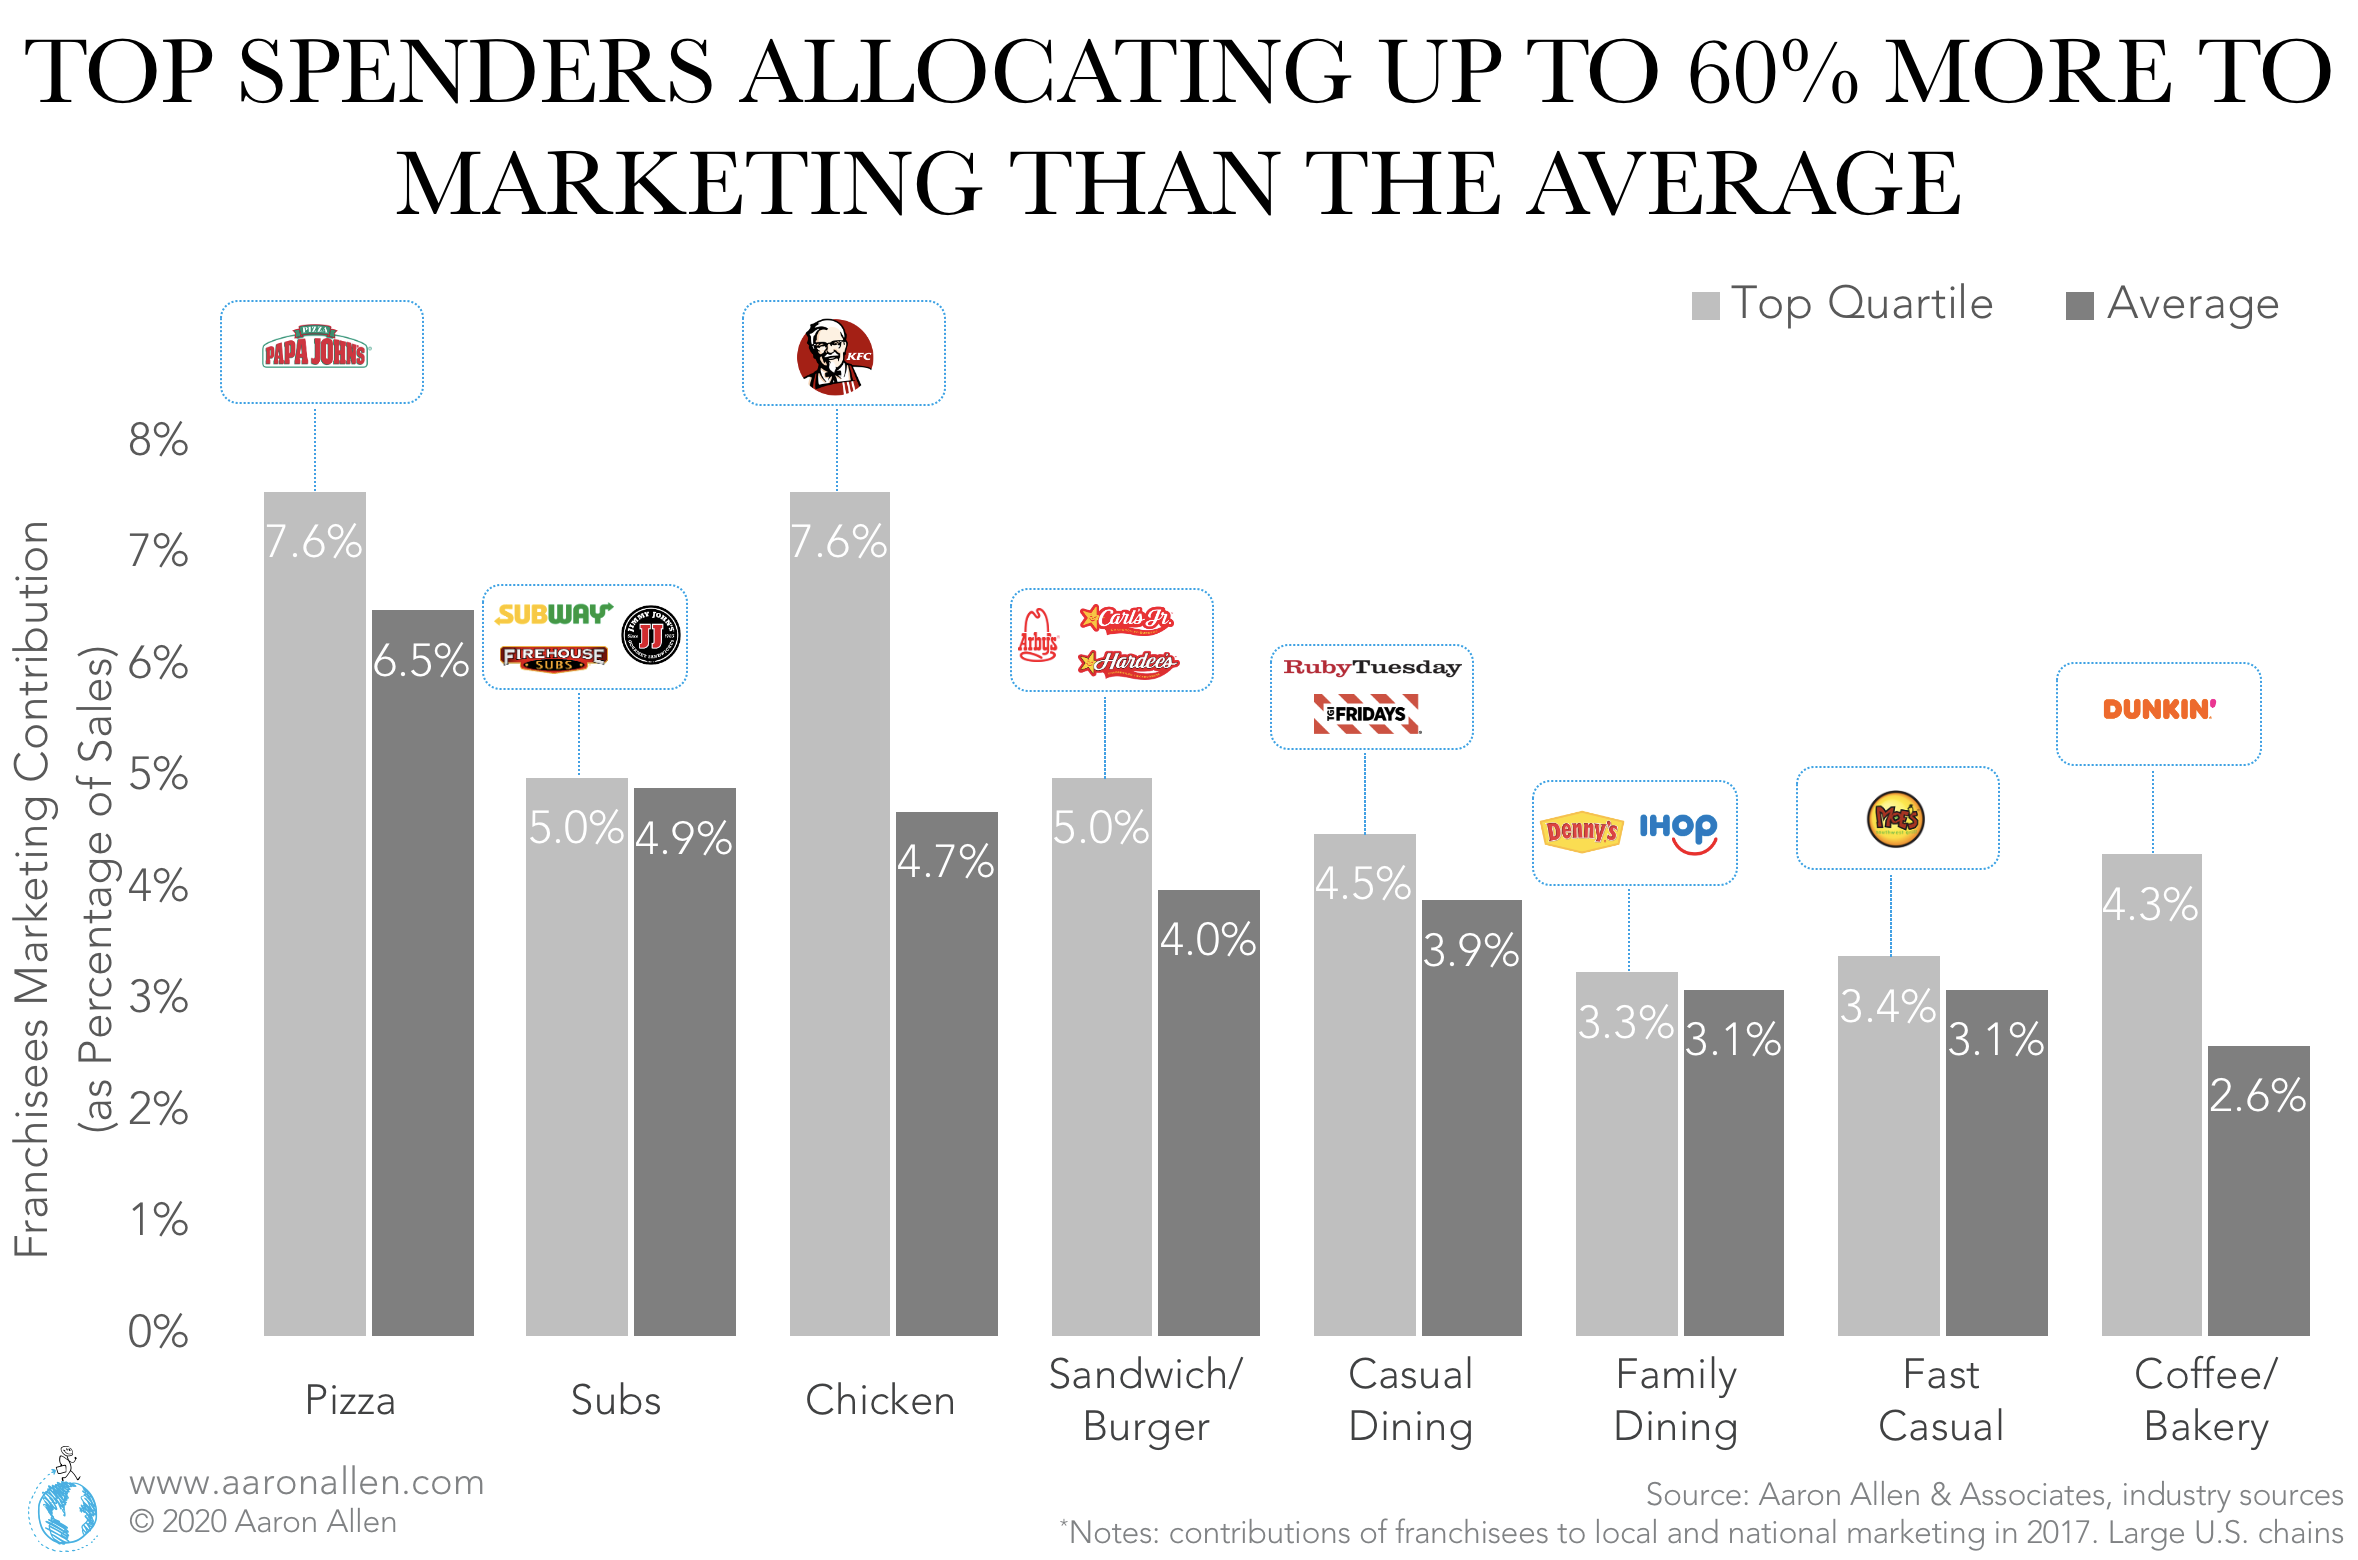 Top quartile allocating significantly more to restaurant marketing spend